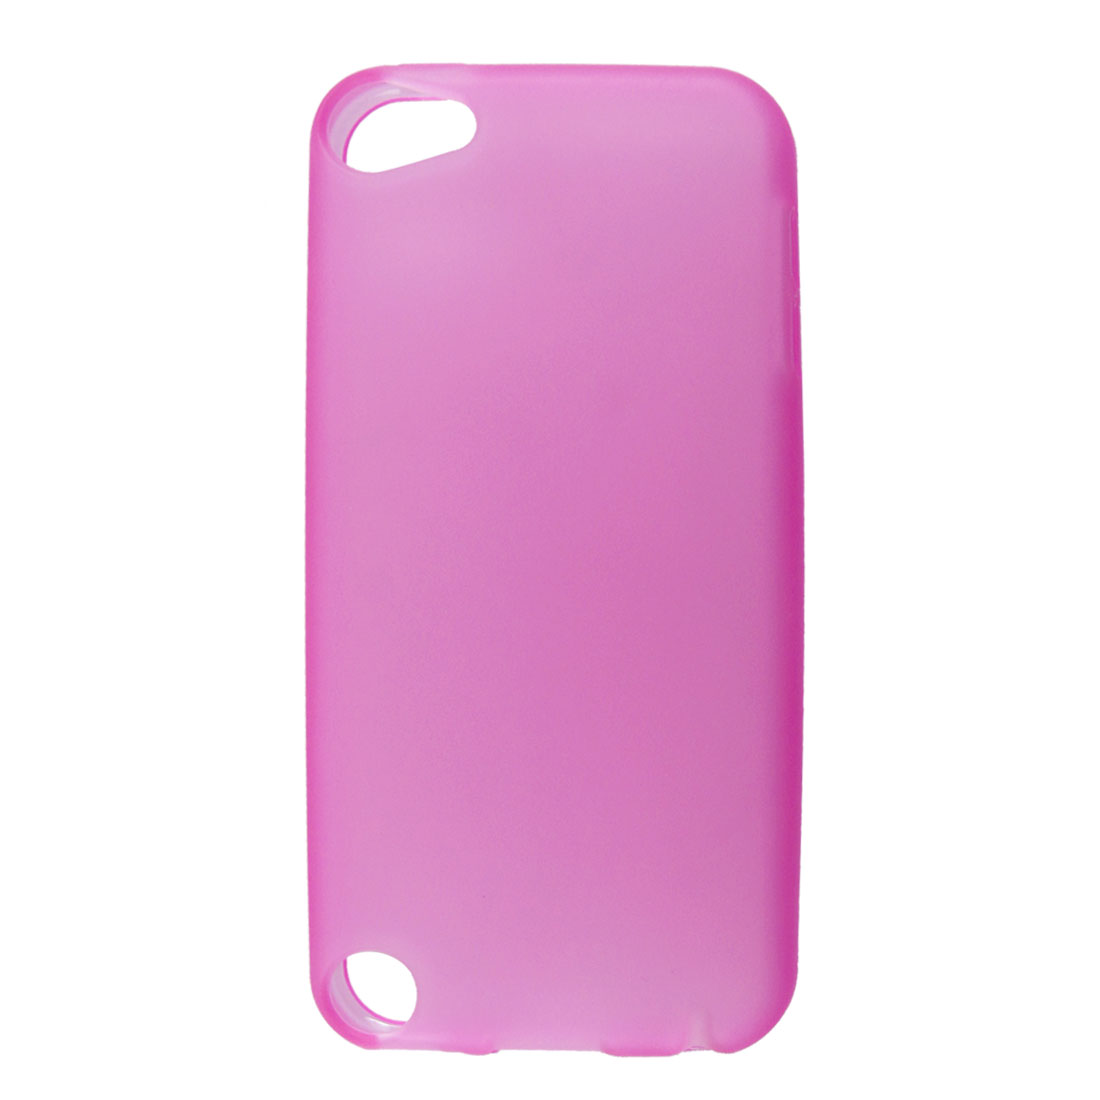 Fuchsia Soft Plastic Case Cover Shell for Apple iPod Touch 5 5th